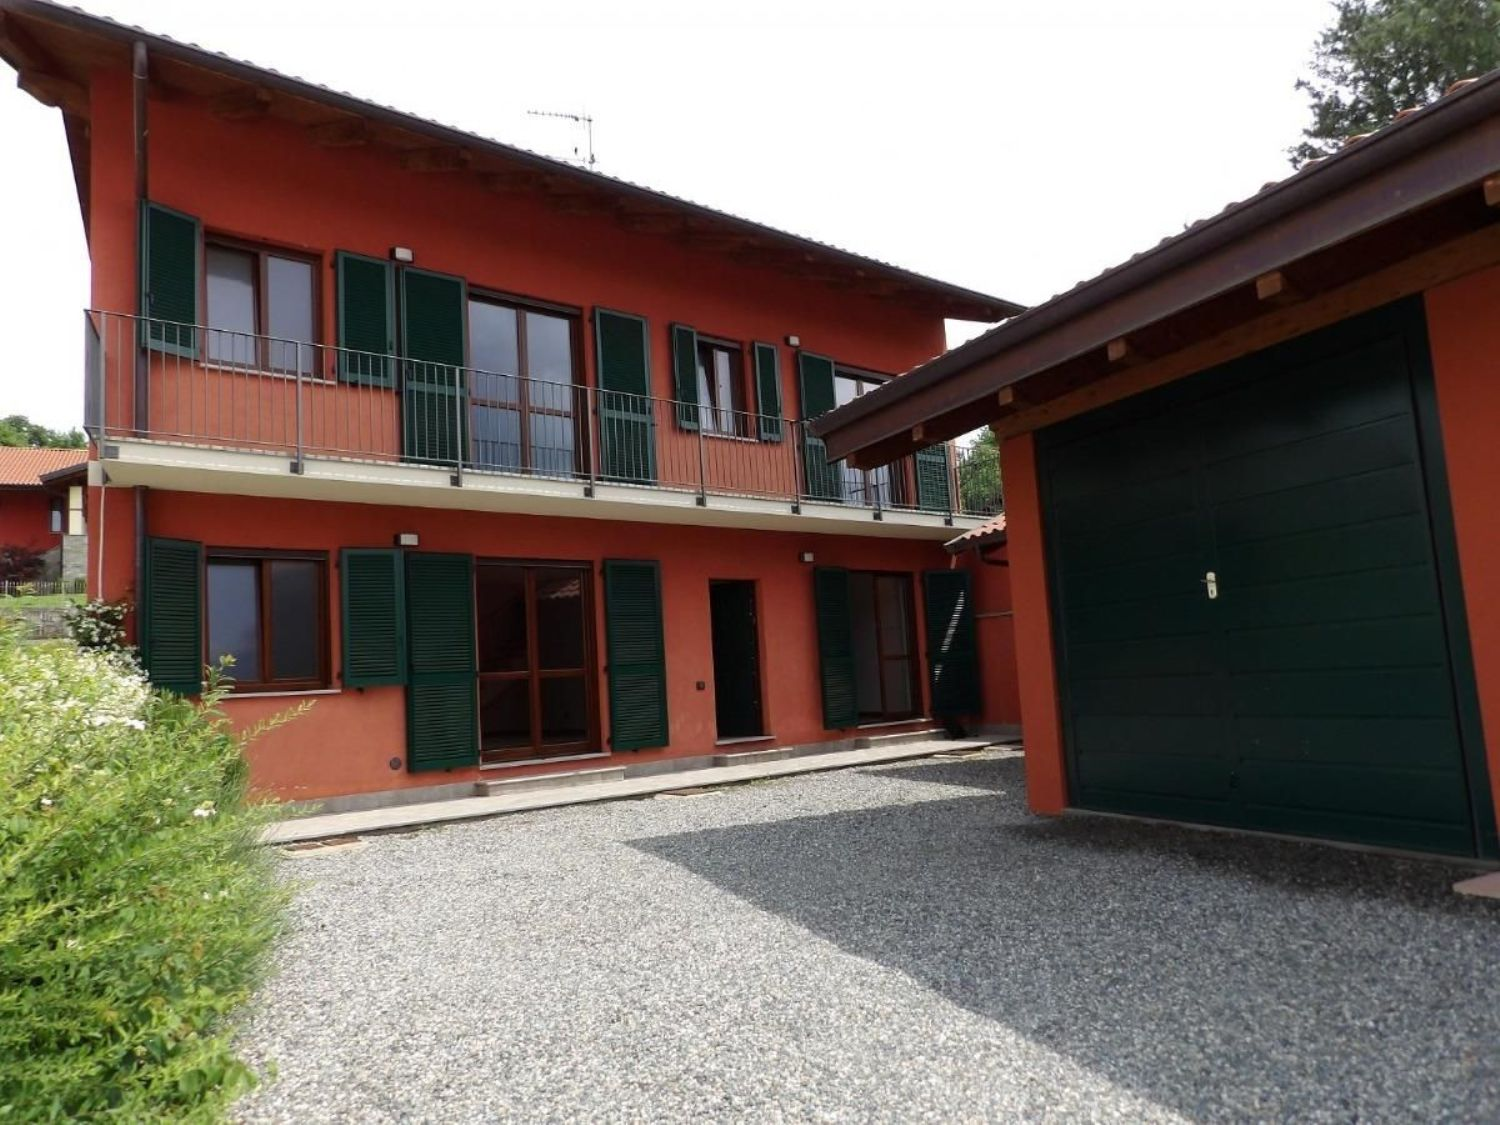 Casa indipendente in affitto a piverone canavese occidentale